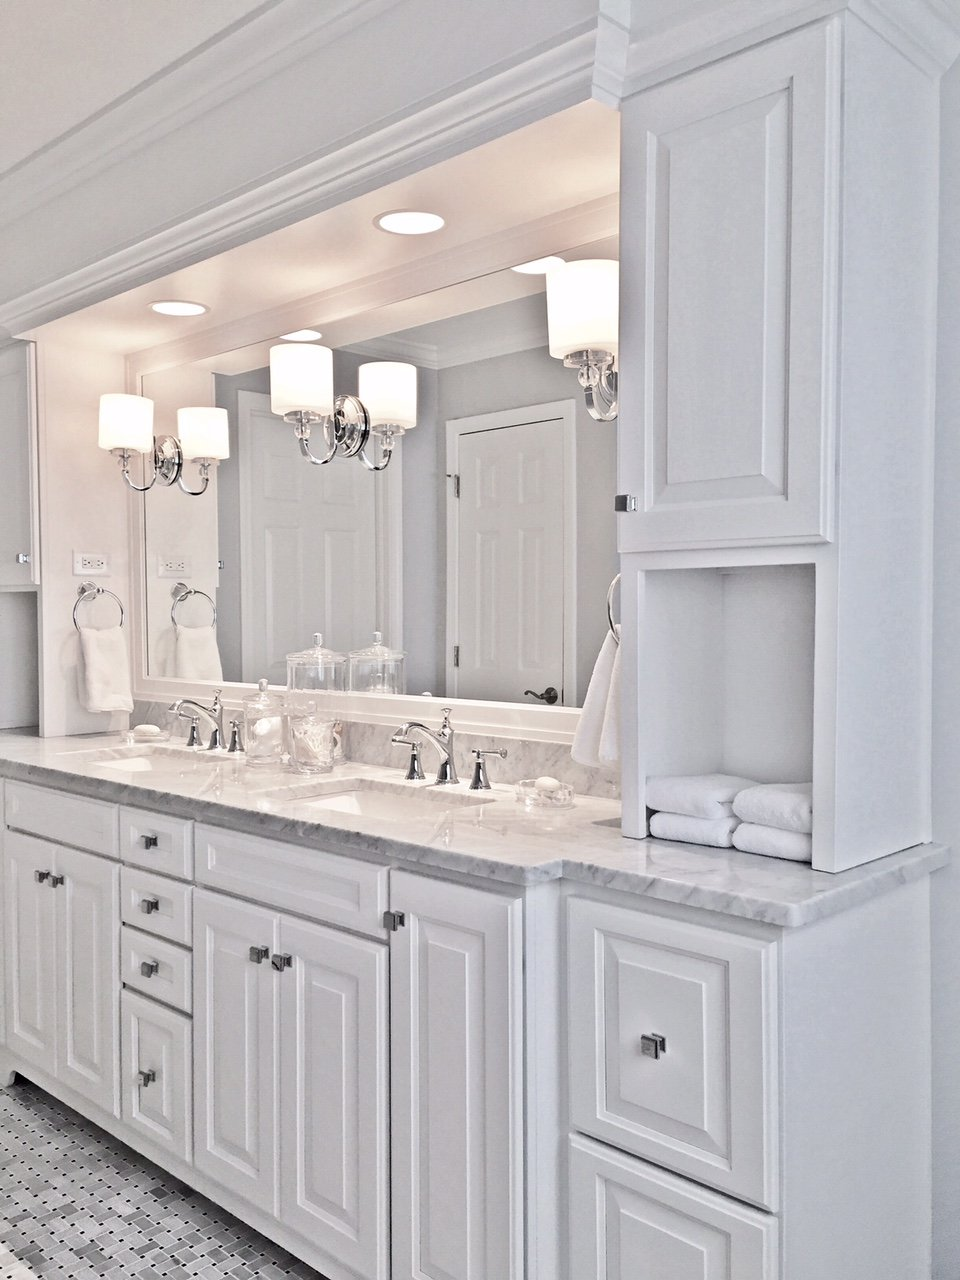 Determining Your Remodeling Budget: Cost vs. Value